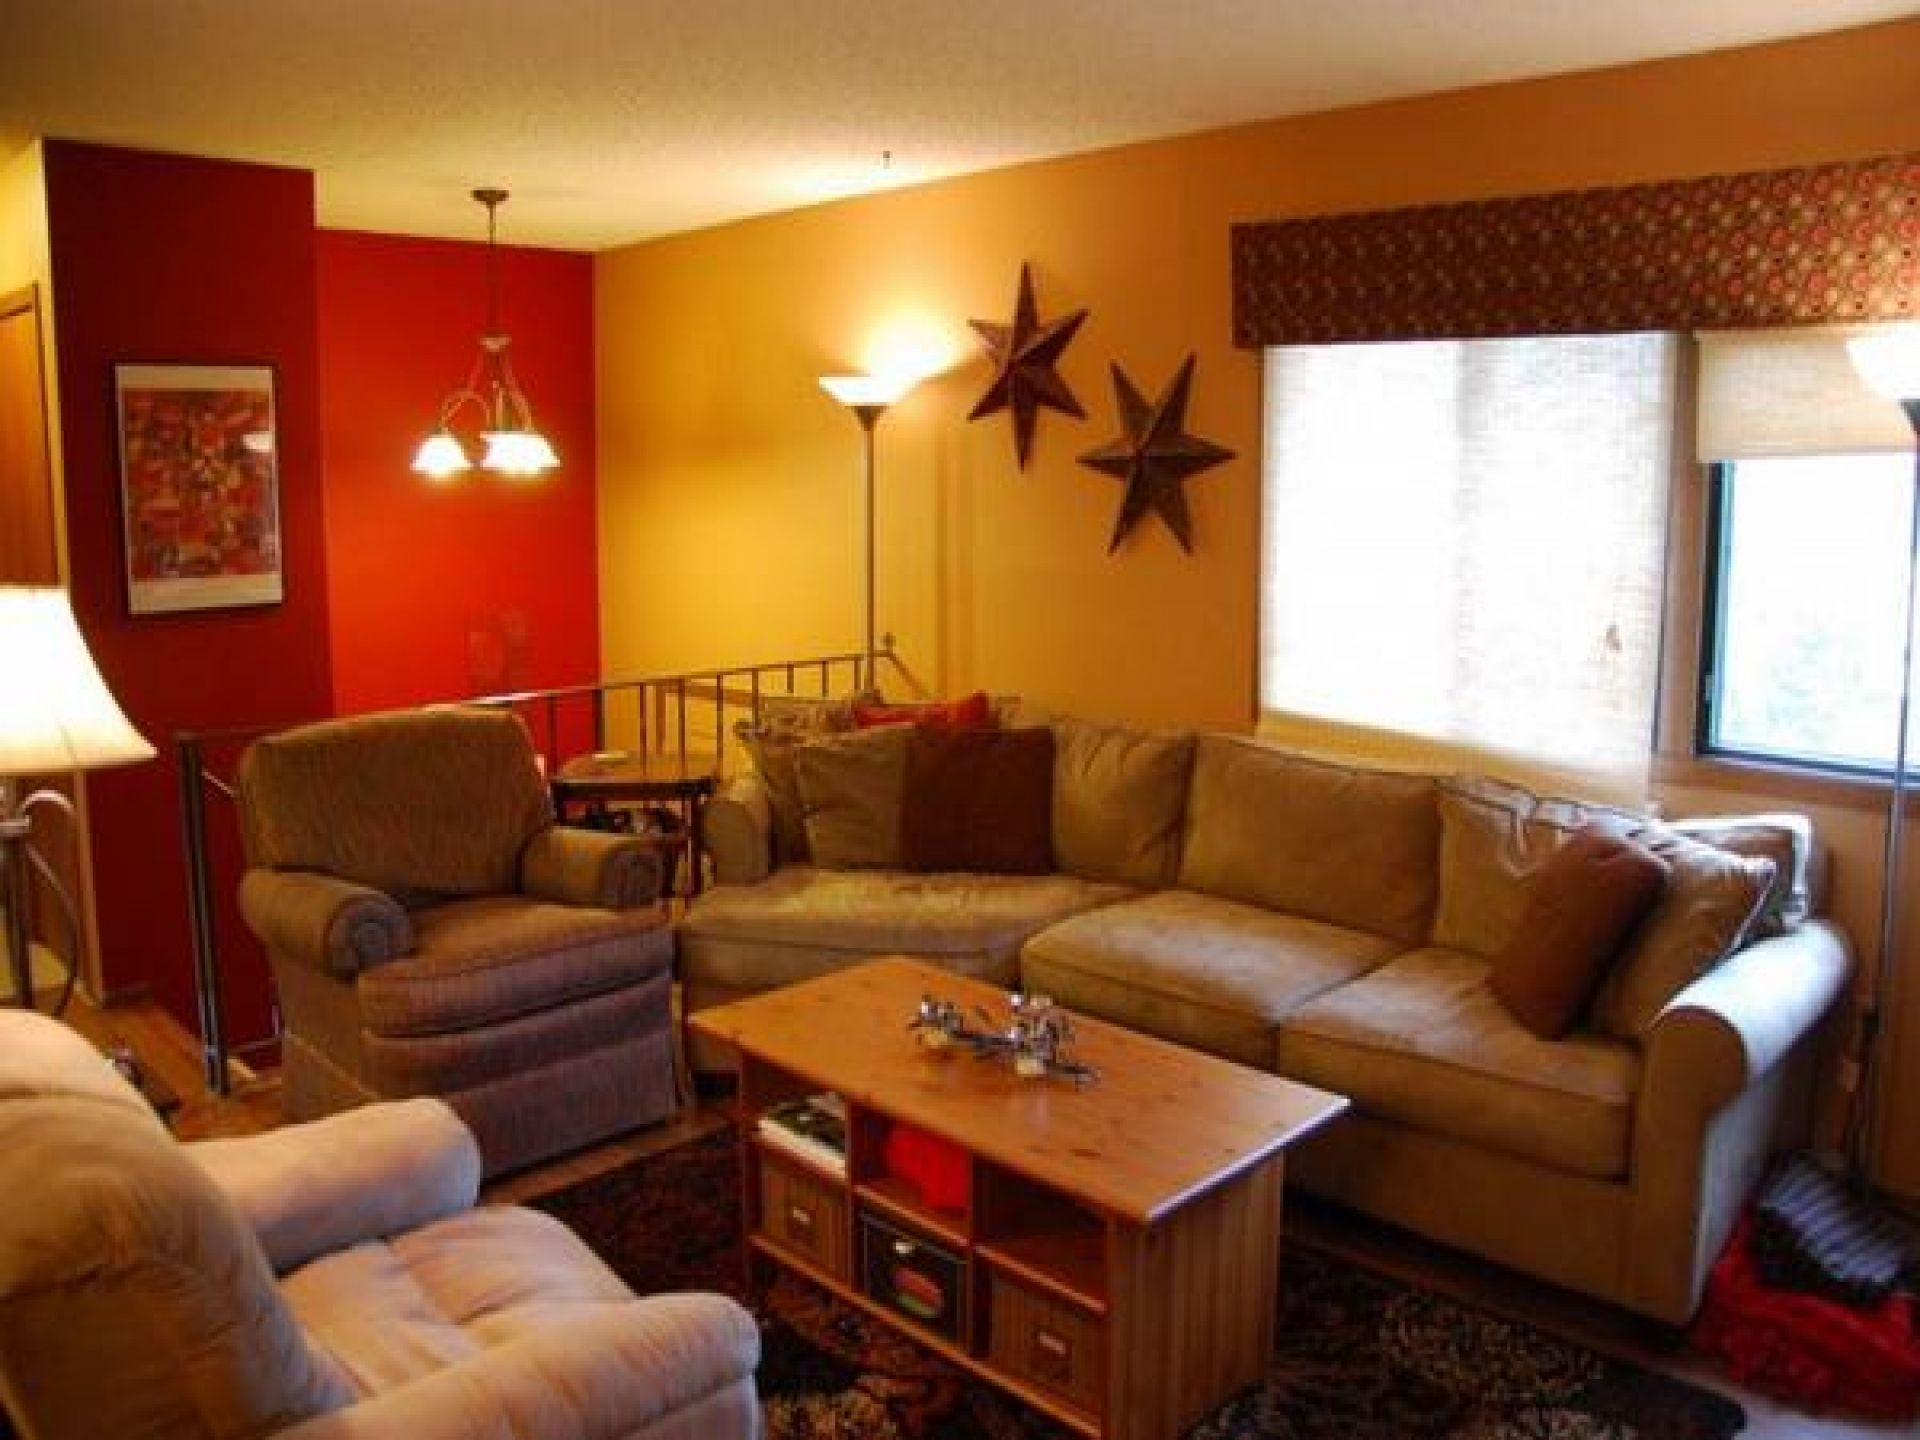 Living room agreeable yellow wall colors ideas elegant tan couch feat red also rh pinterest